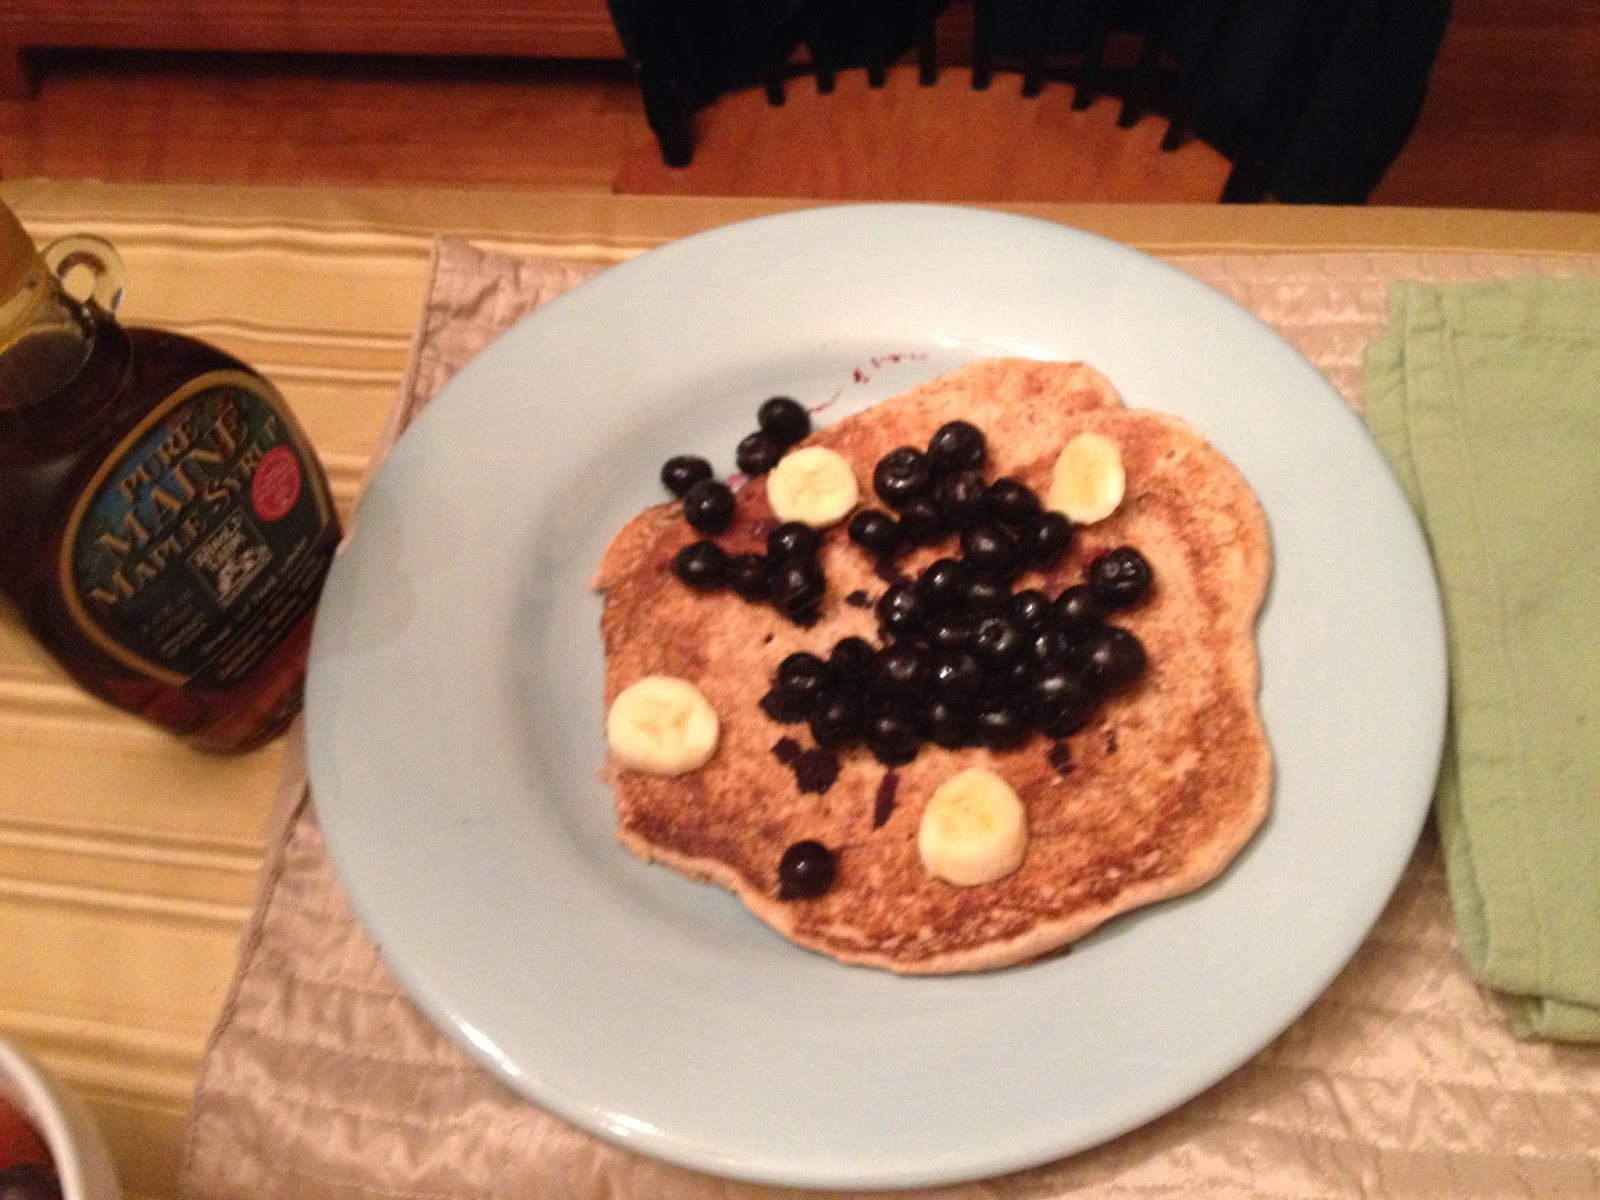 learning curve (and pancakes!)